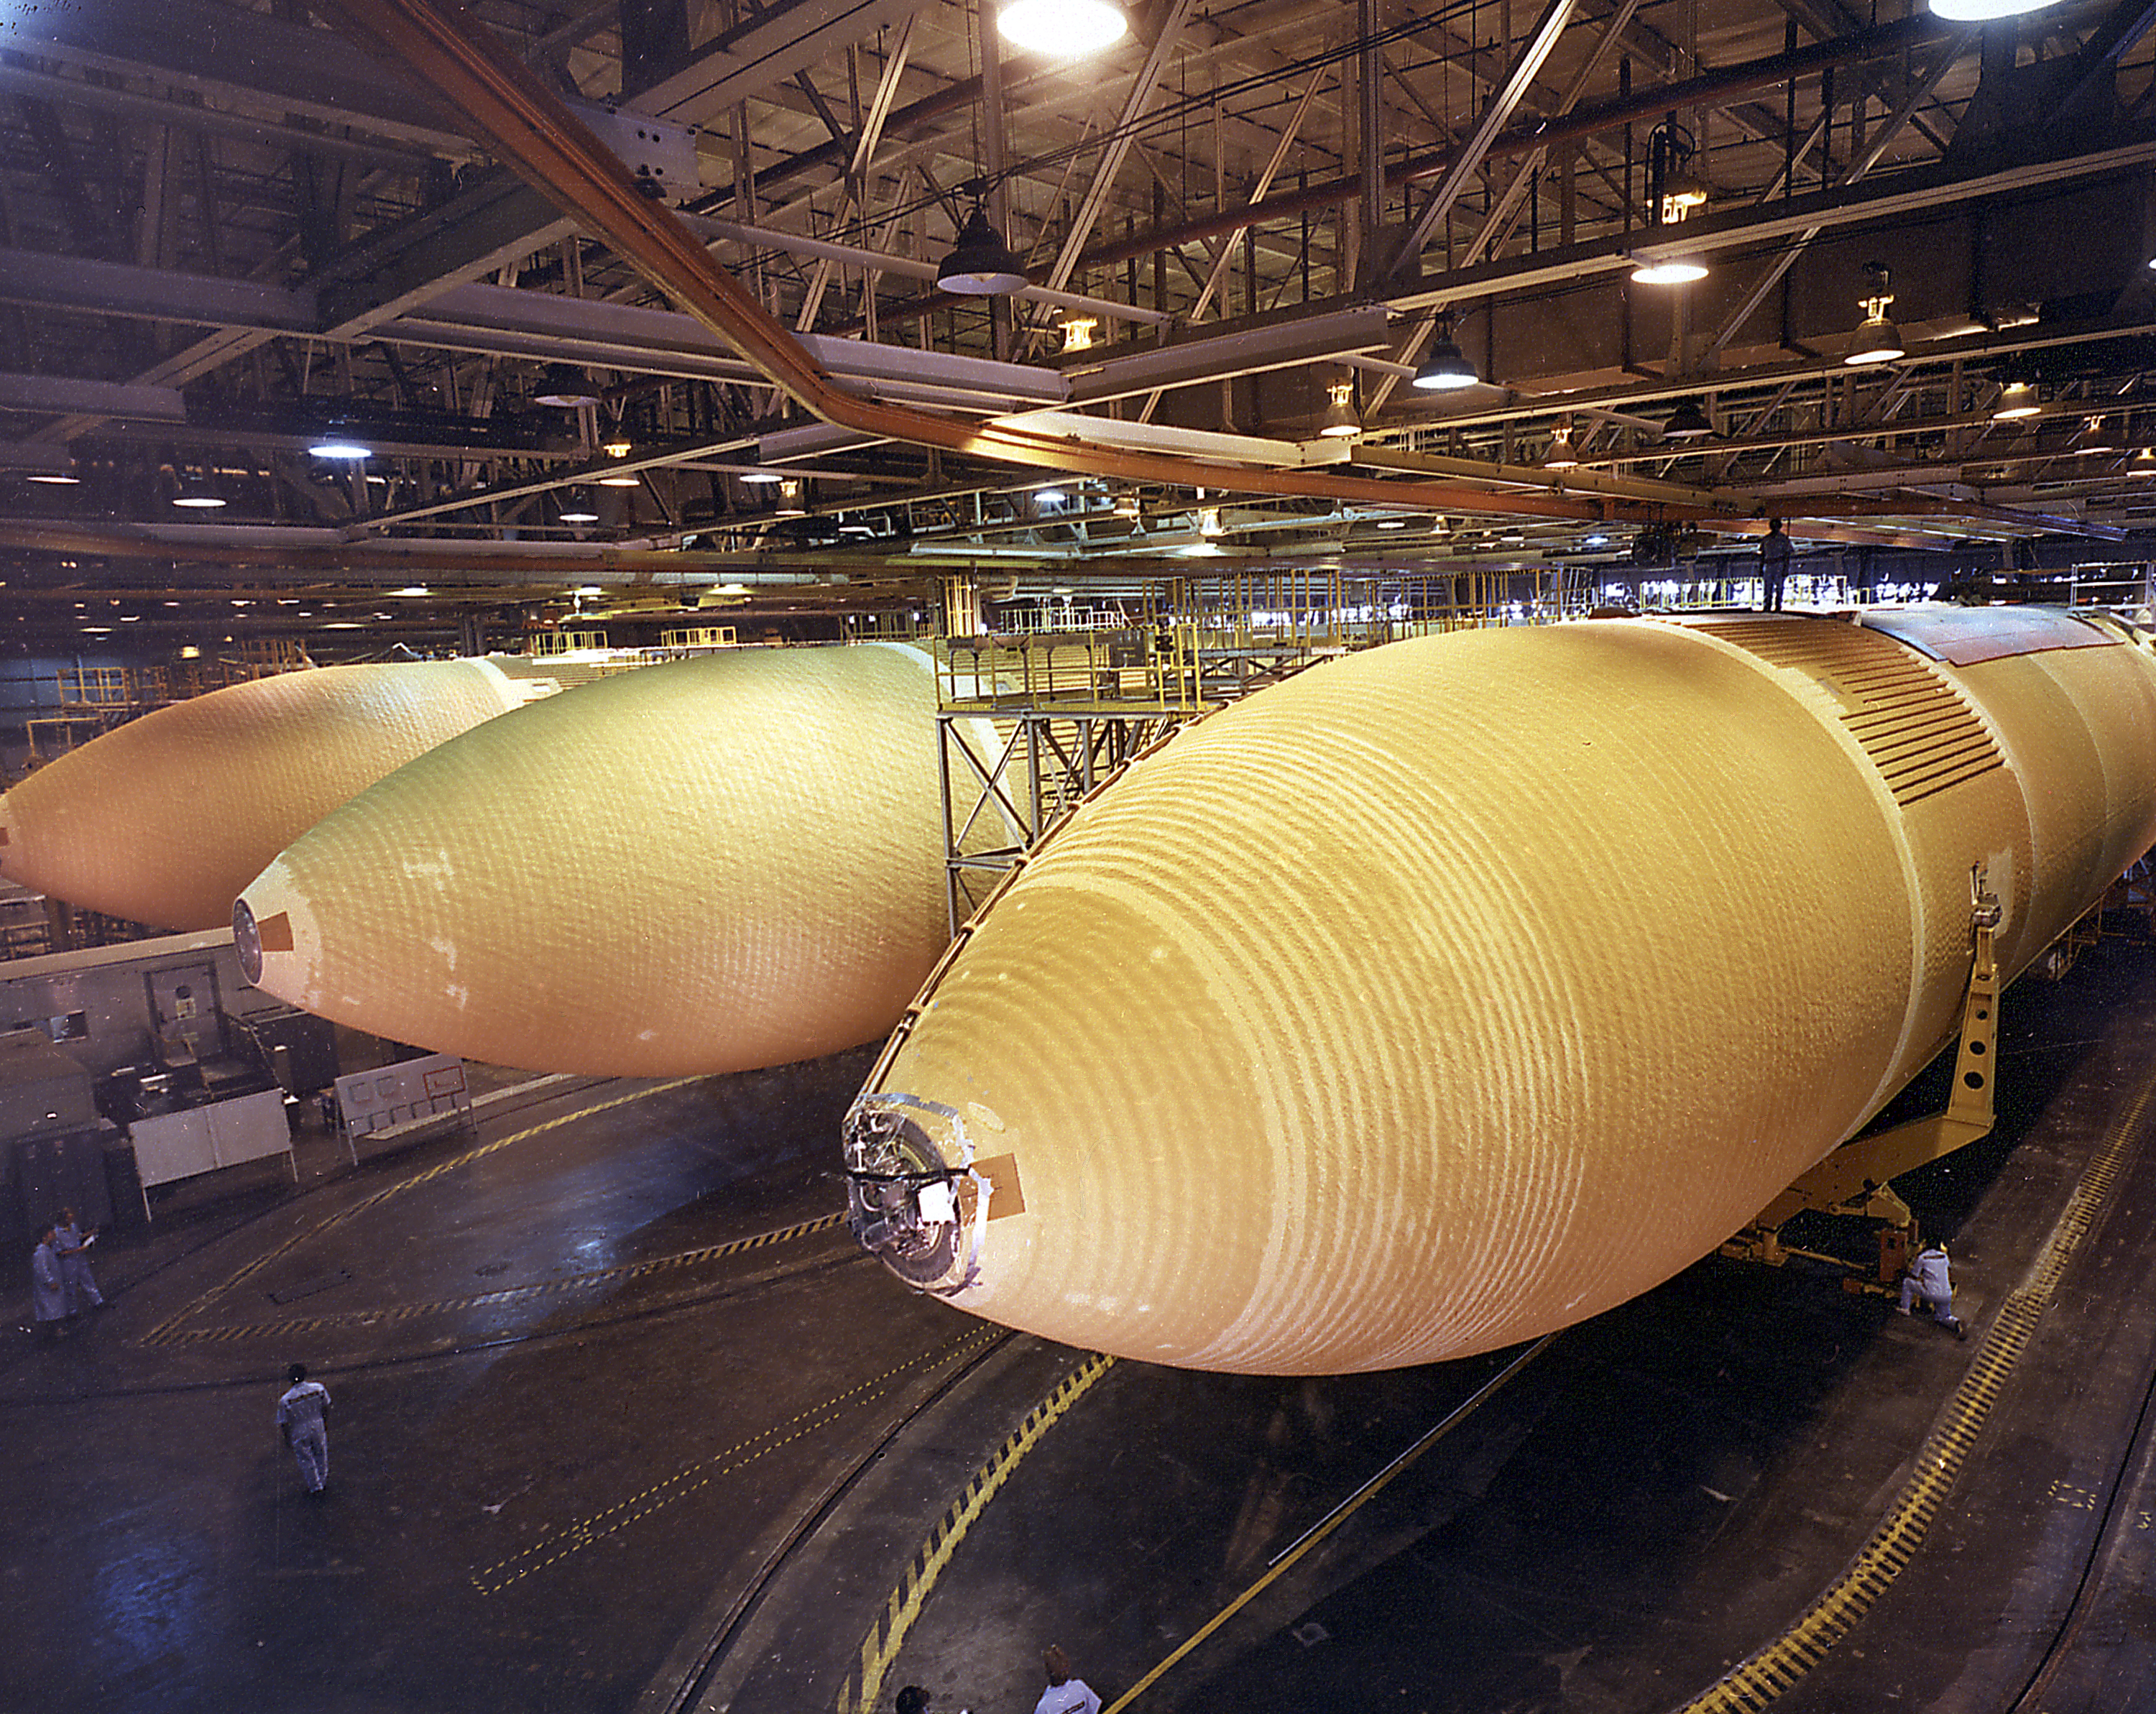 space shuttle external tank - photo #5